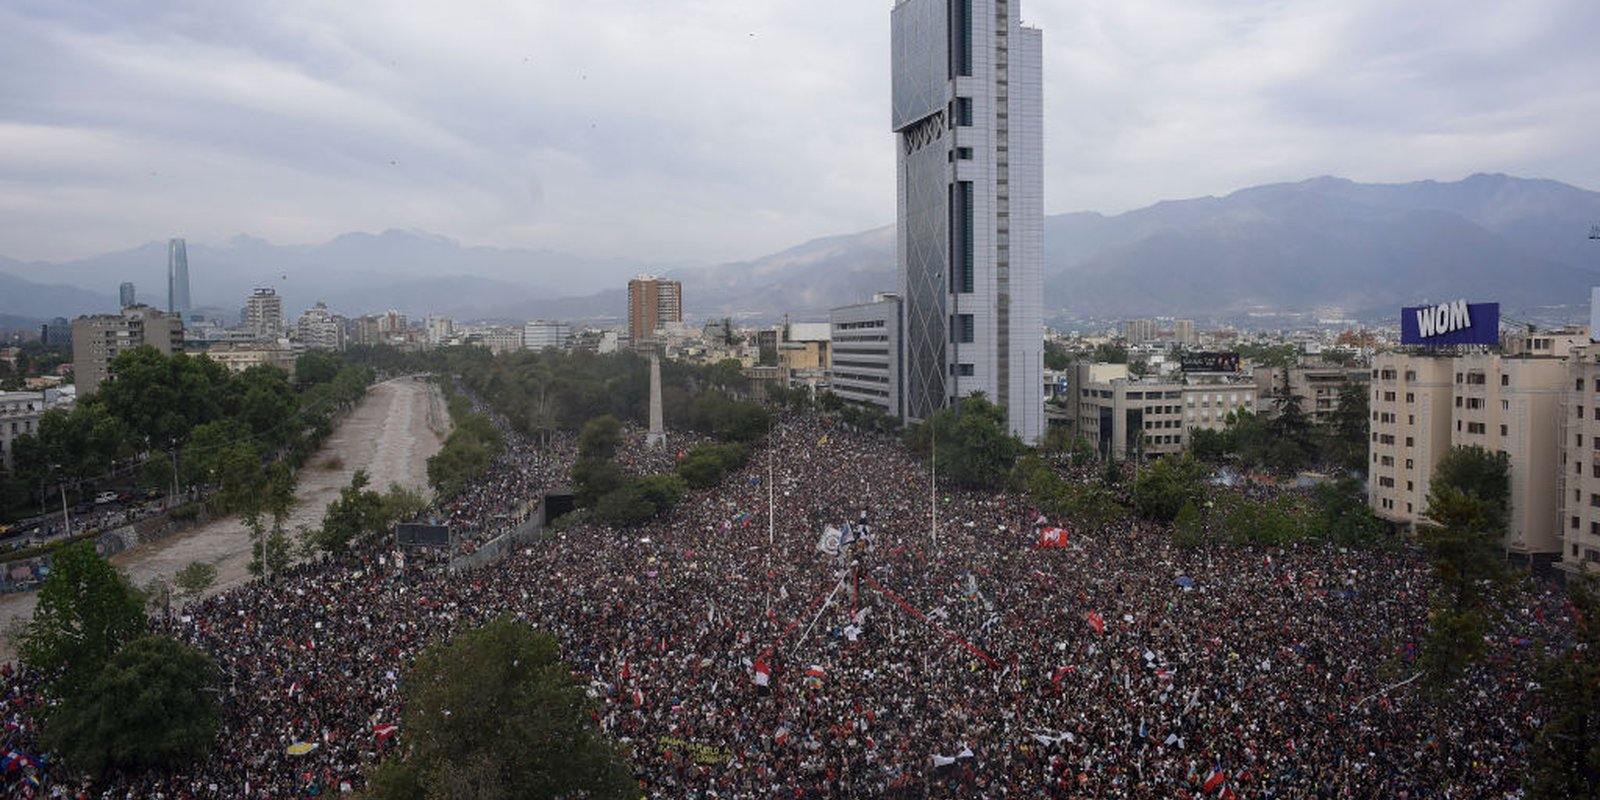 Mass protest at Plaza Baquedano during the eighth day of protests against President Sebastian Piñera's government on October 25, 2019 in Santiago, Chile. Photo by Claudio Santana/Getty Images.